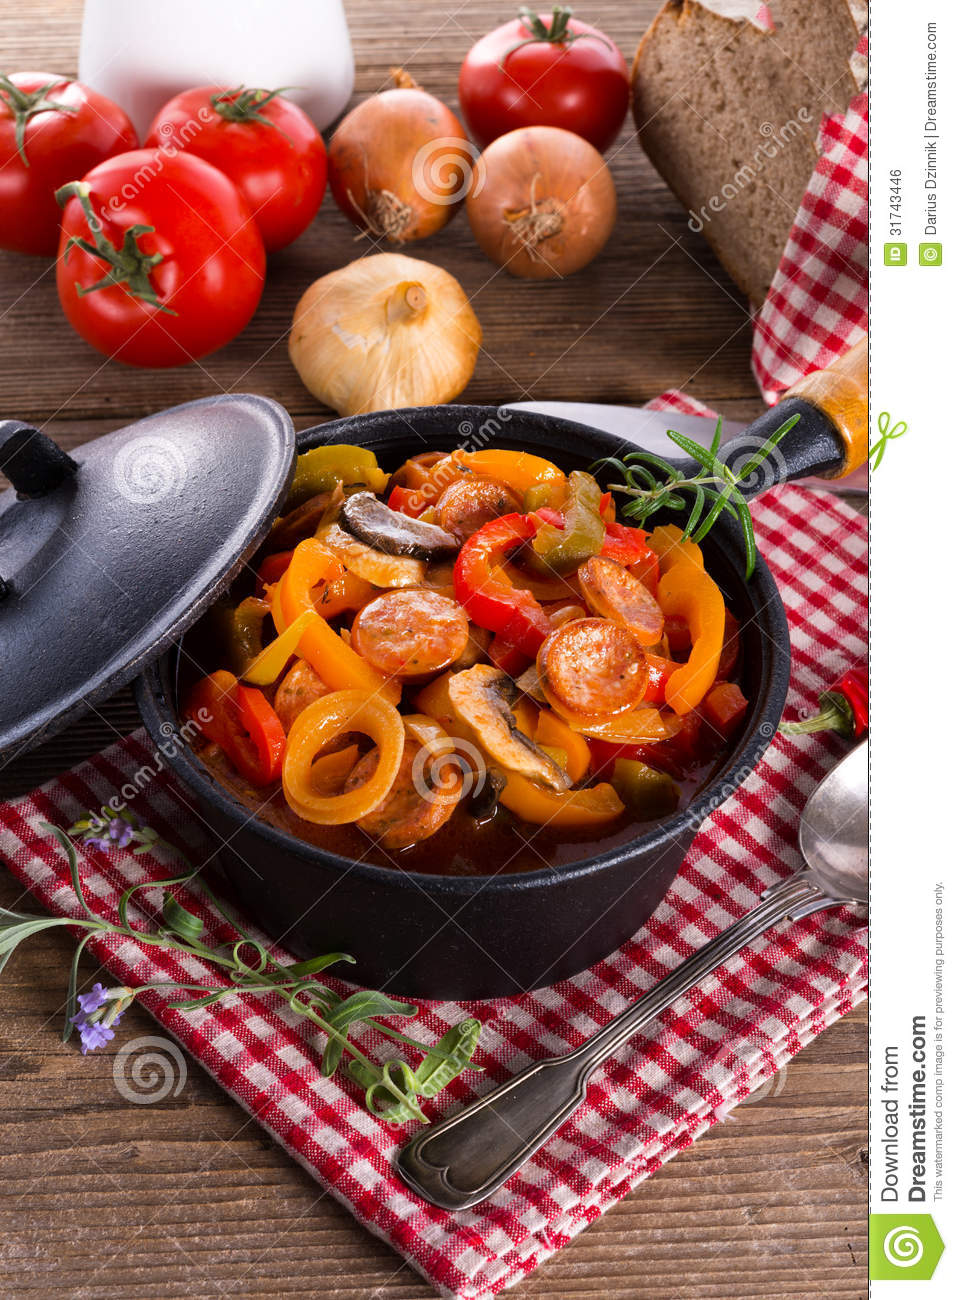 Lecho of pepper and tomatoes and carrots: cooking recipes